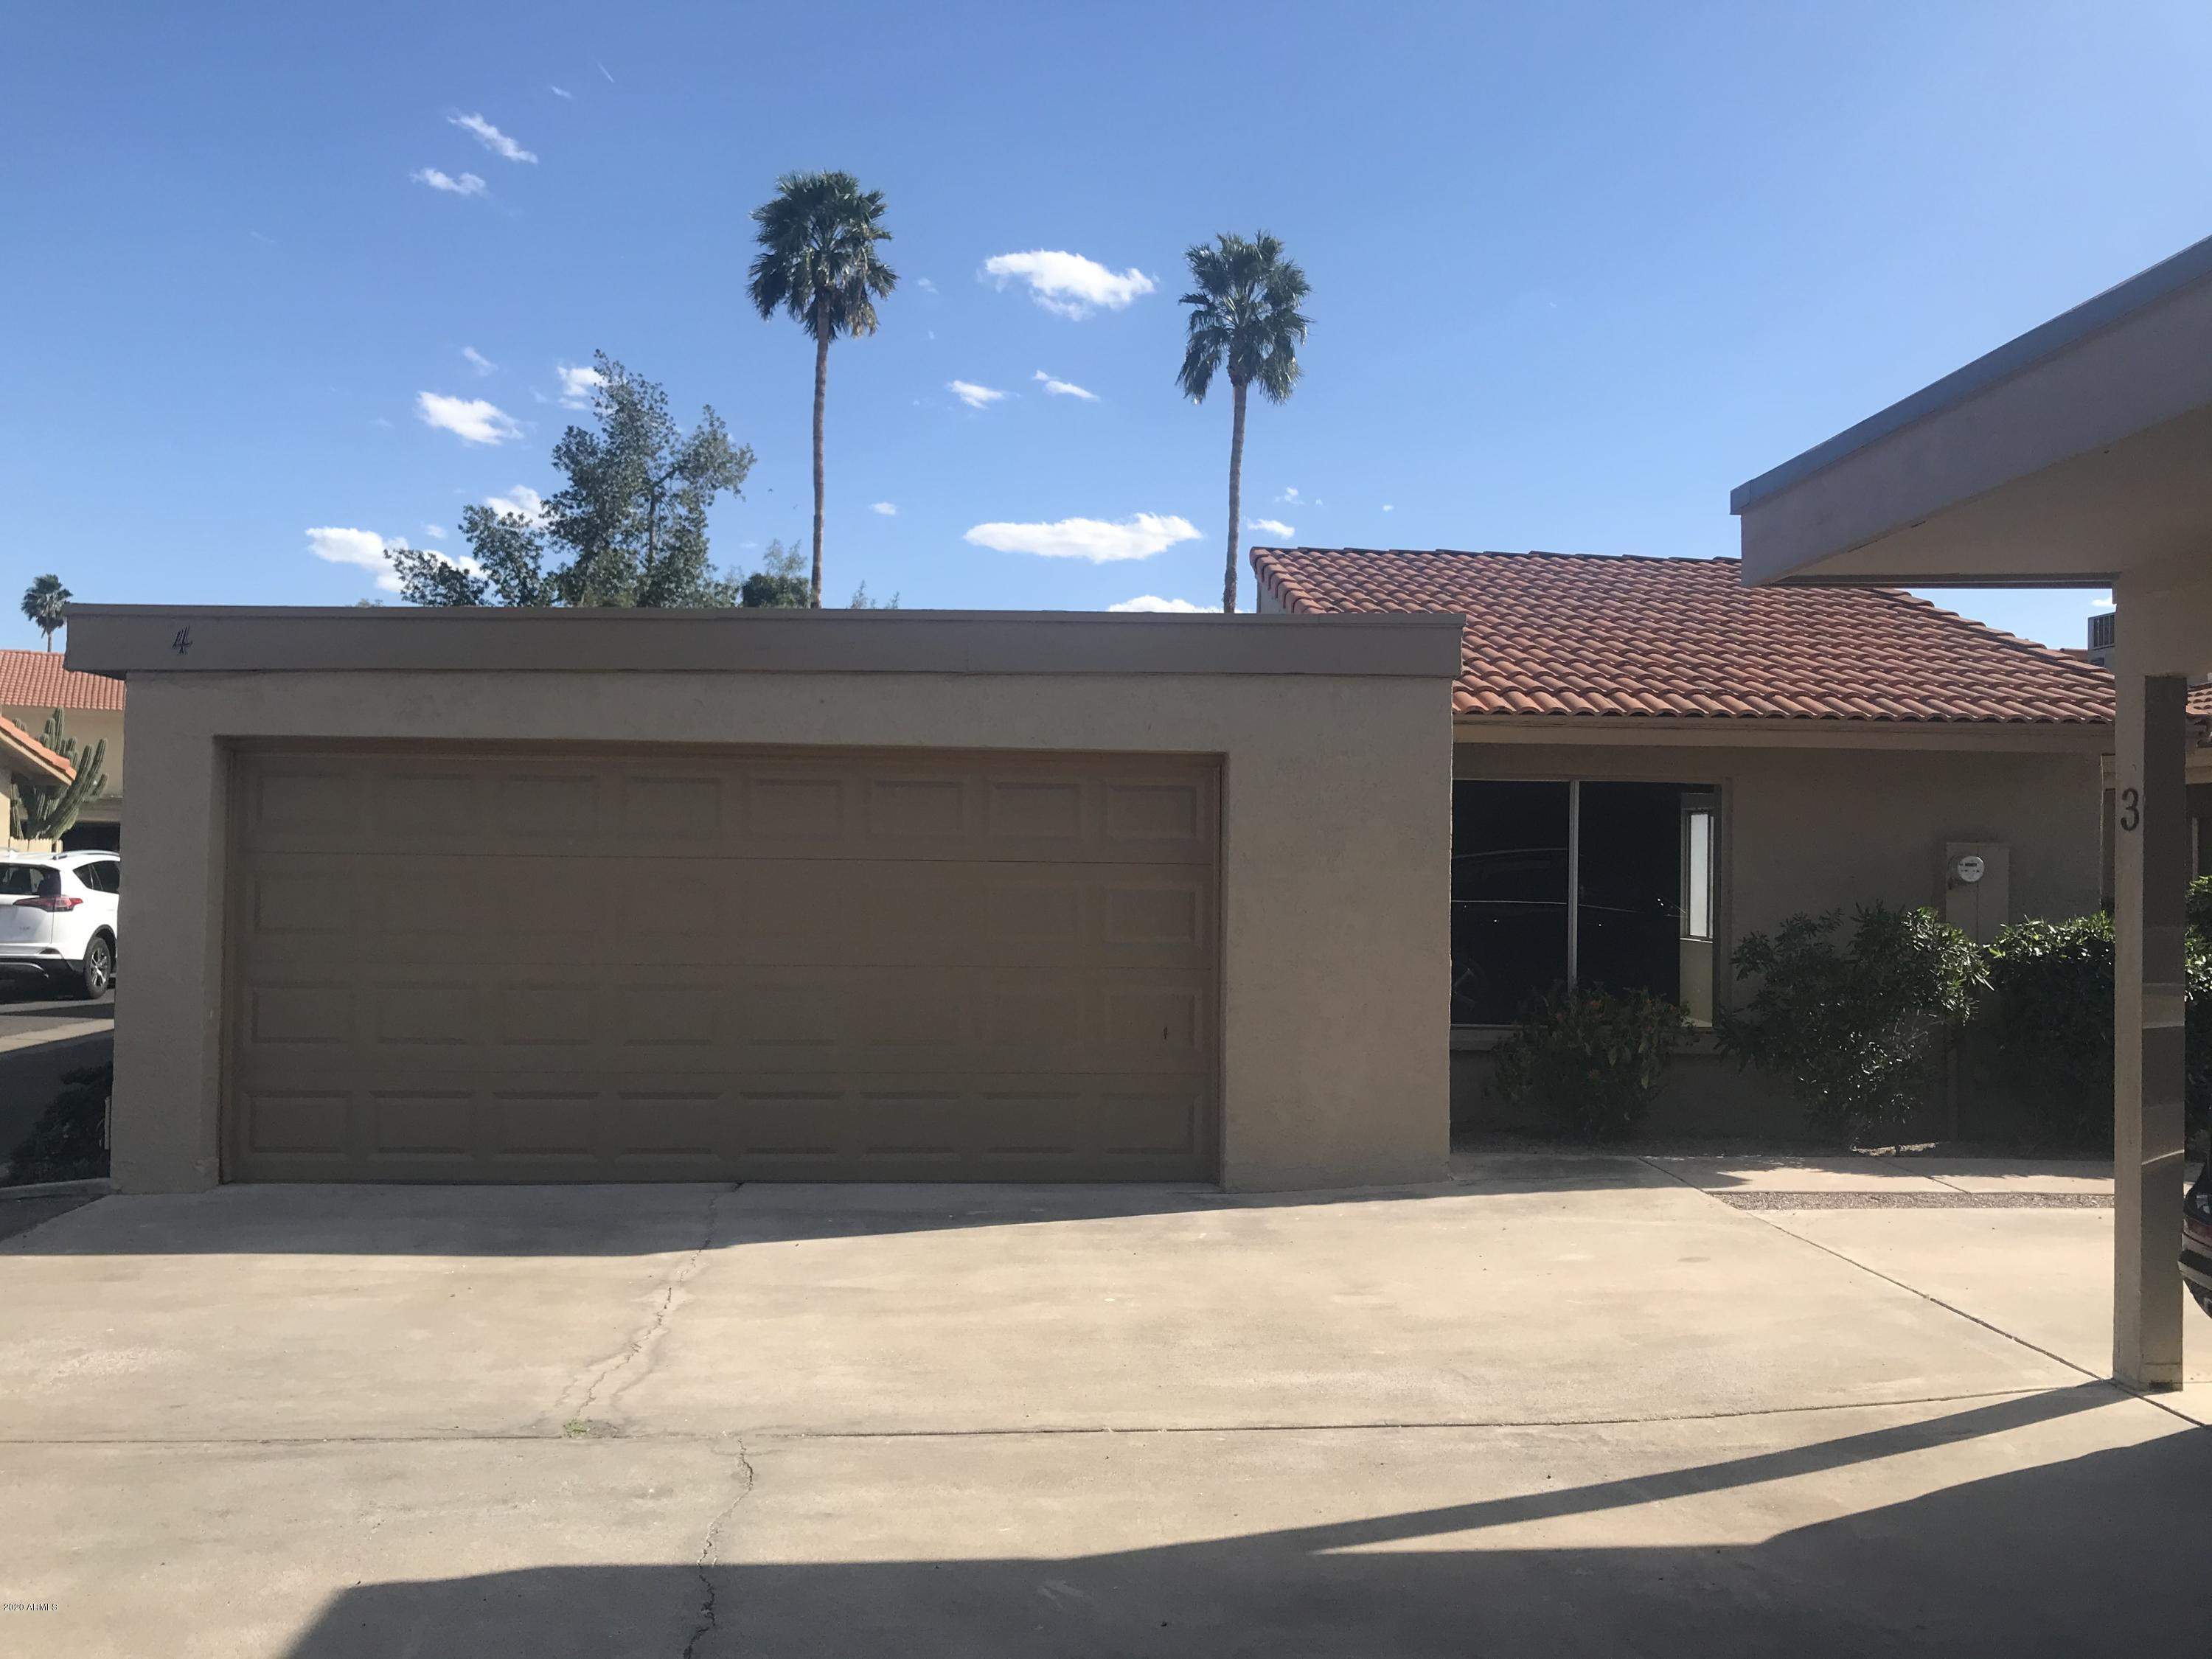 15201 N 25TH Phoenix, AZ 85023 Photo #1